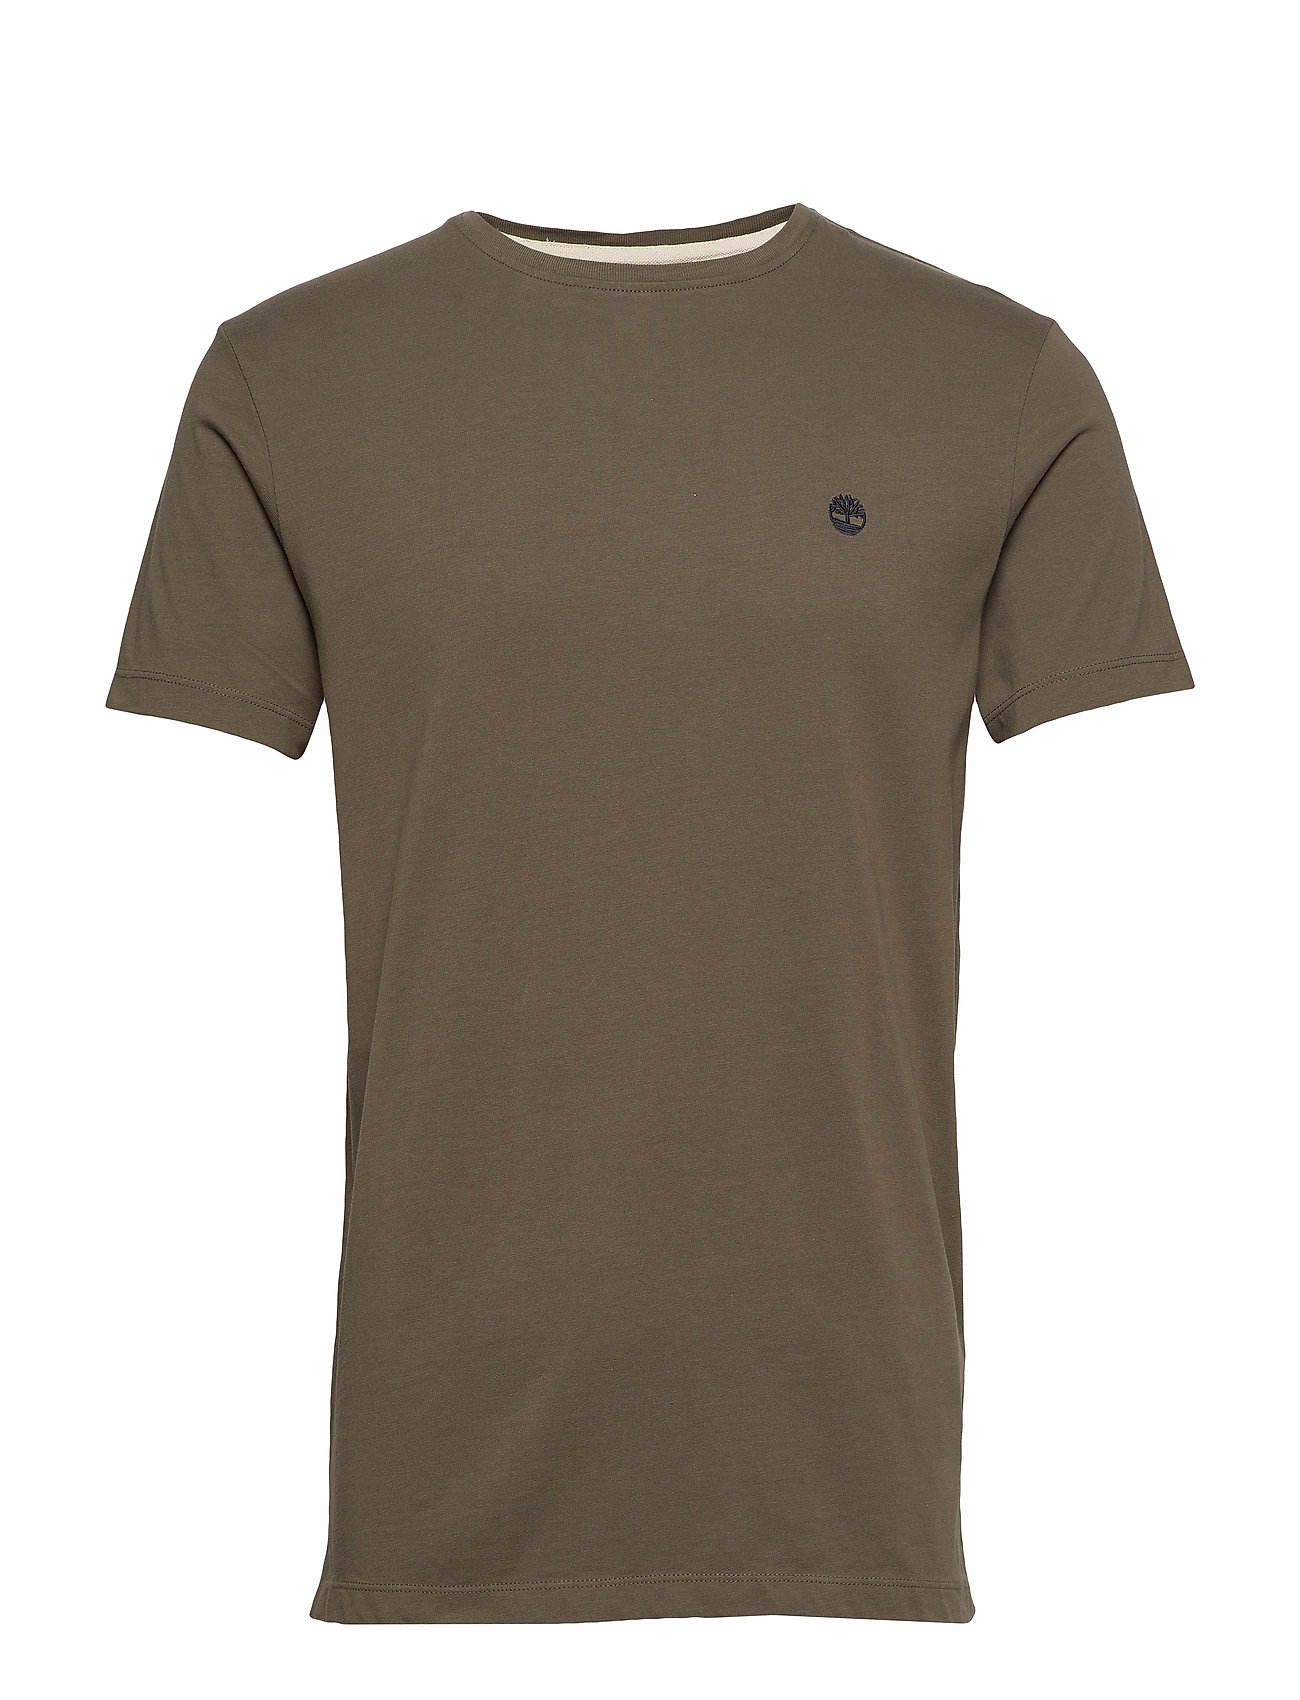 Timberland SS Dunstan River Crew Tee (Slim) - GRAPE LEAF